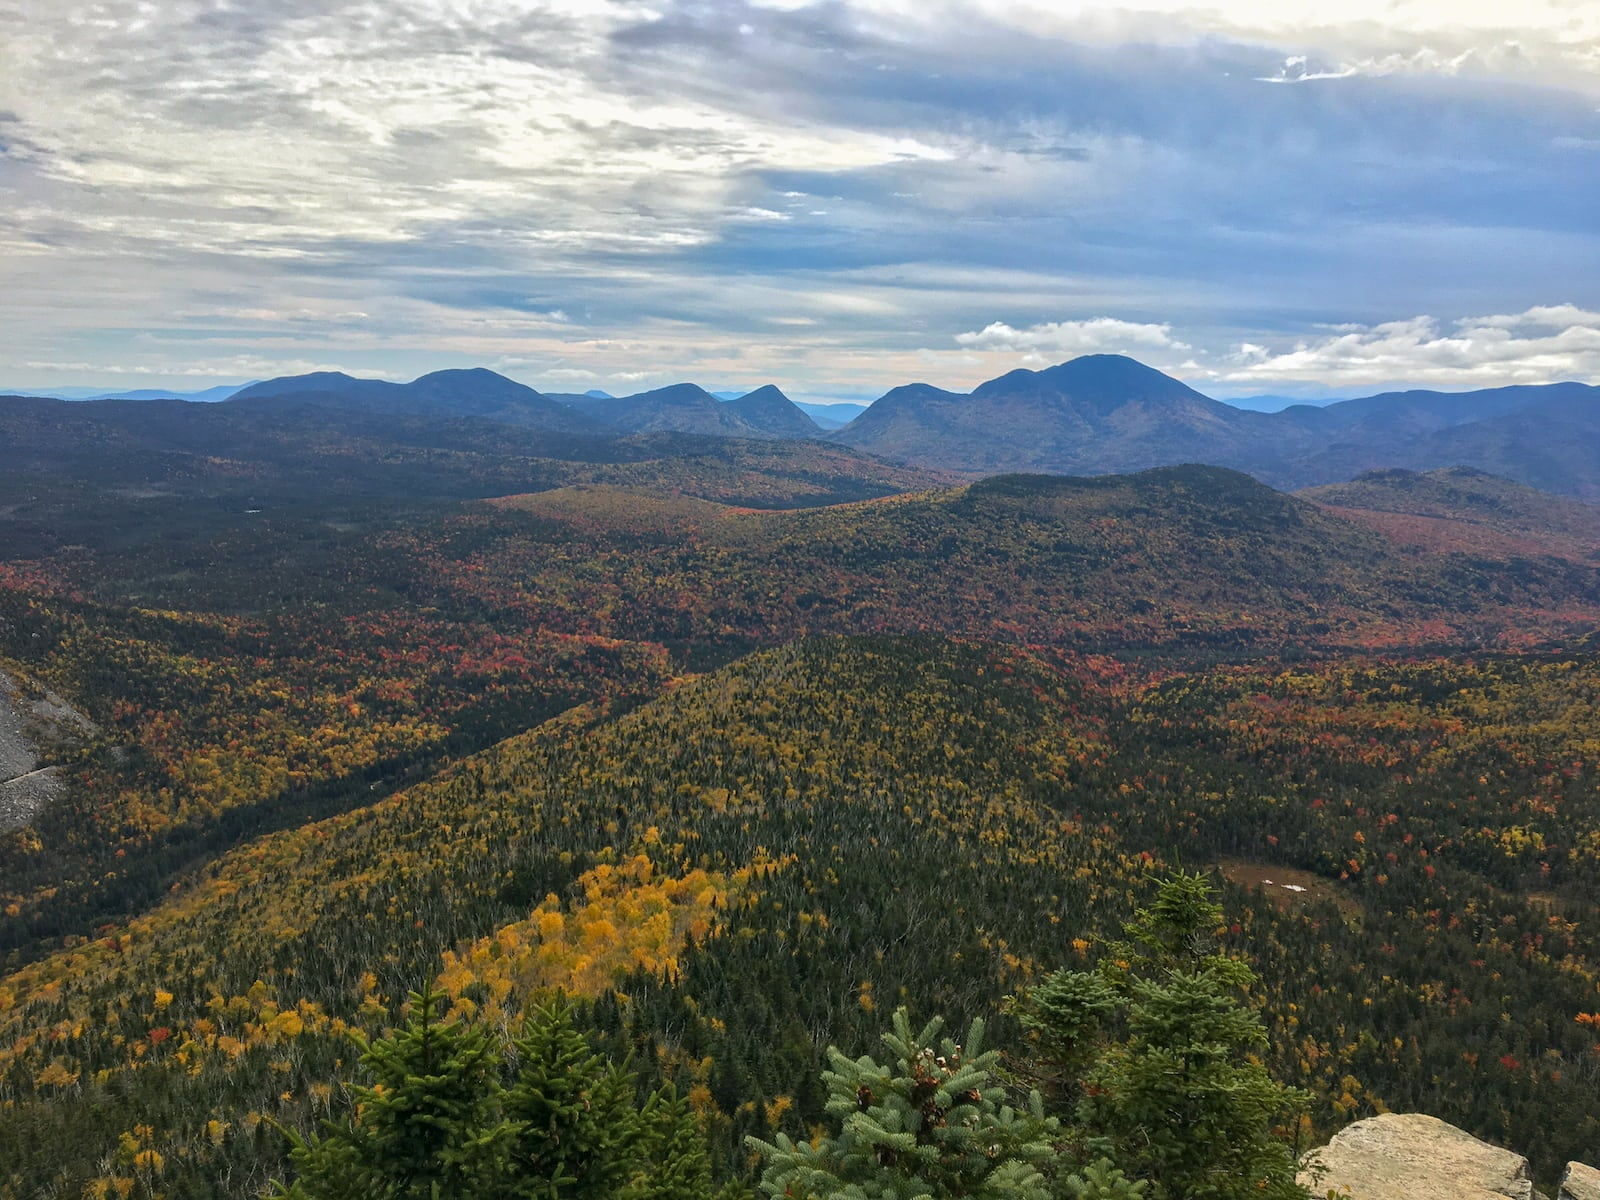 Fall Foliage view from AMC hut in the white mountains.